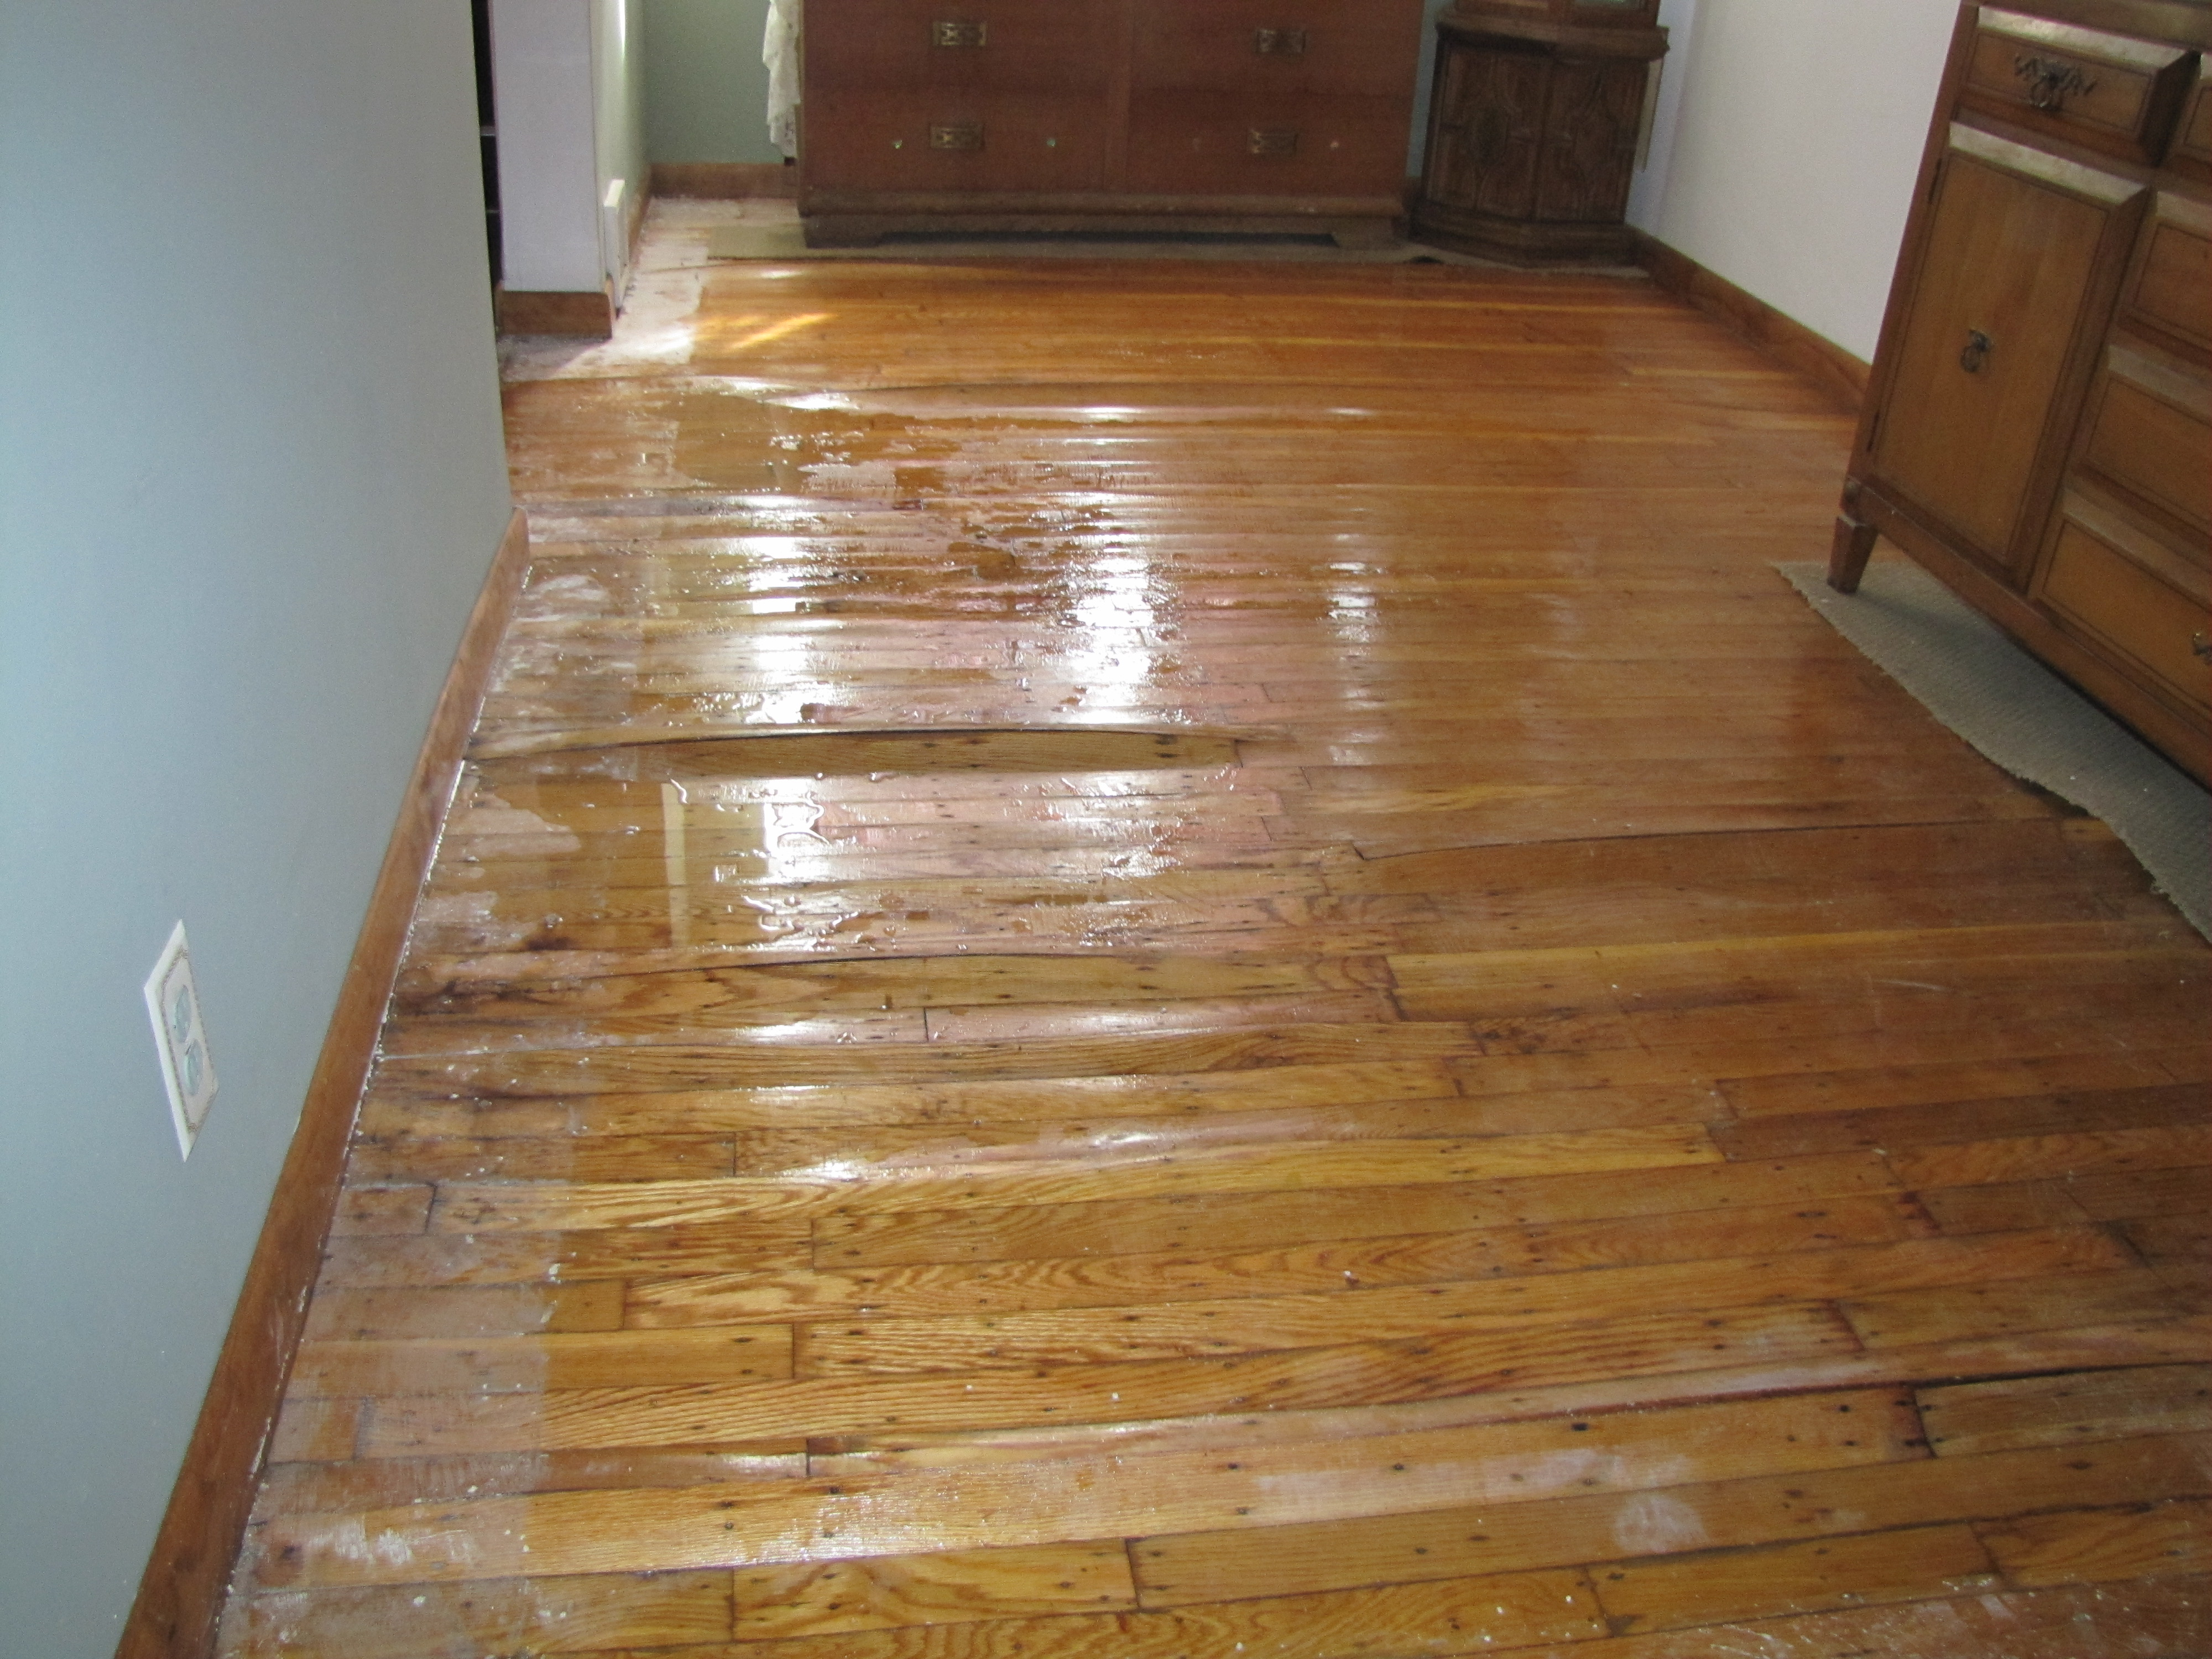 Buckled Floors Mold Solutions And Inspection Services